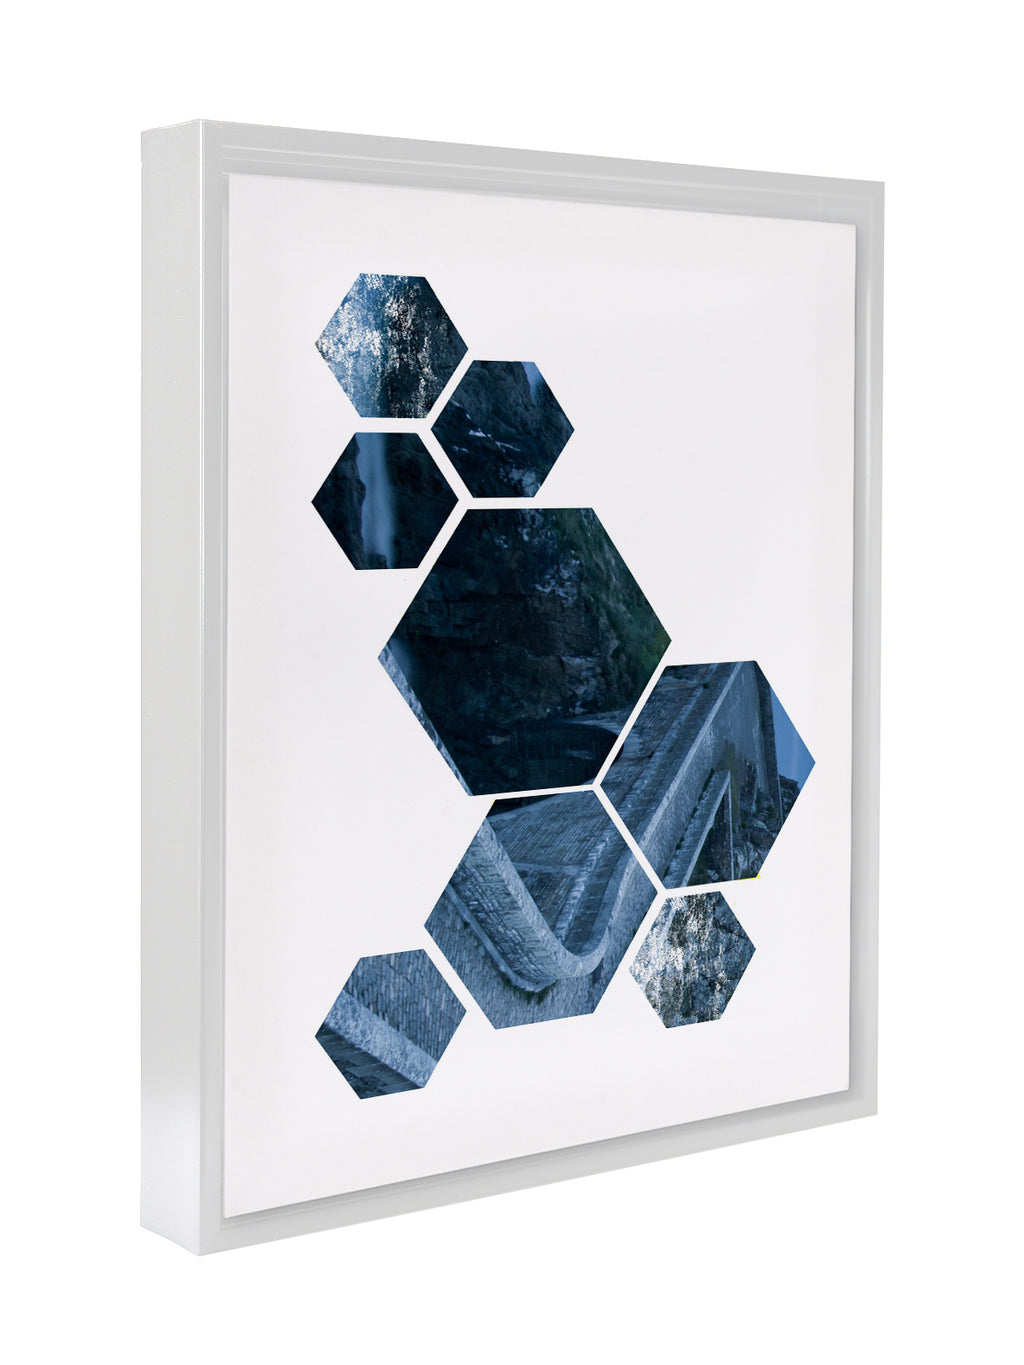 NORDIC SHAPES BLUE Premium Framed Gallery Wrap By Honeytree Prints